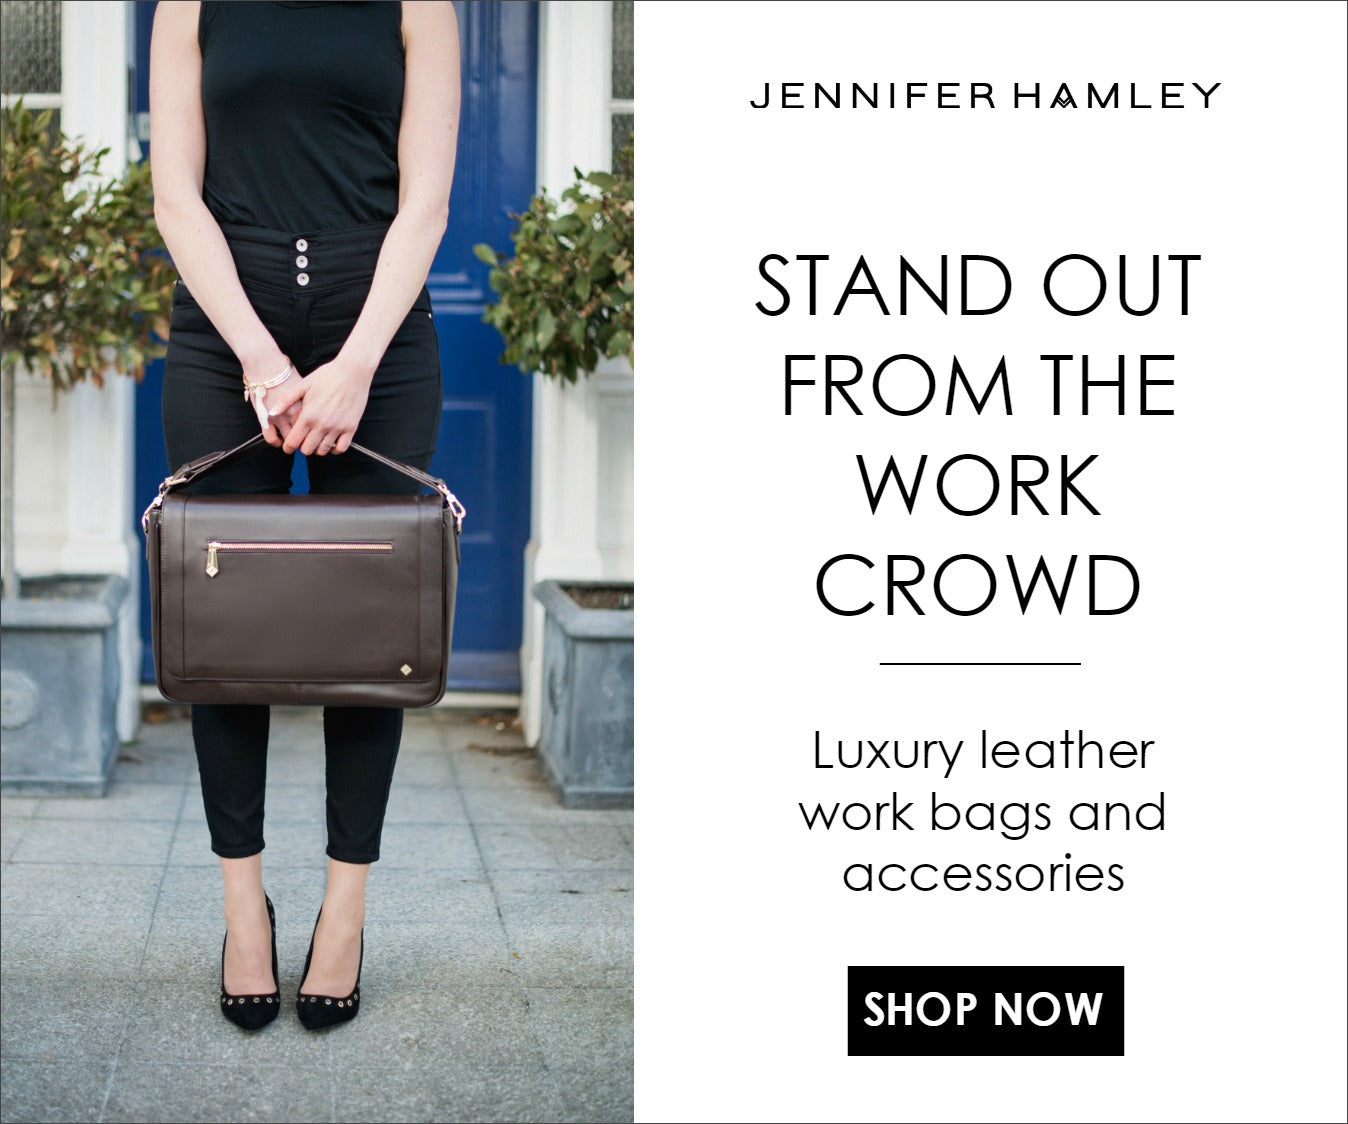 stand out from the work crowd - jennifer hamley bags laptop bags and workbags